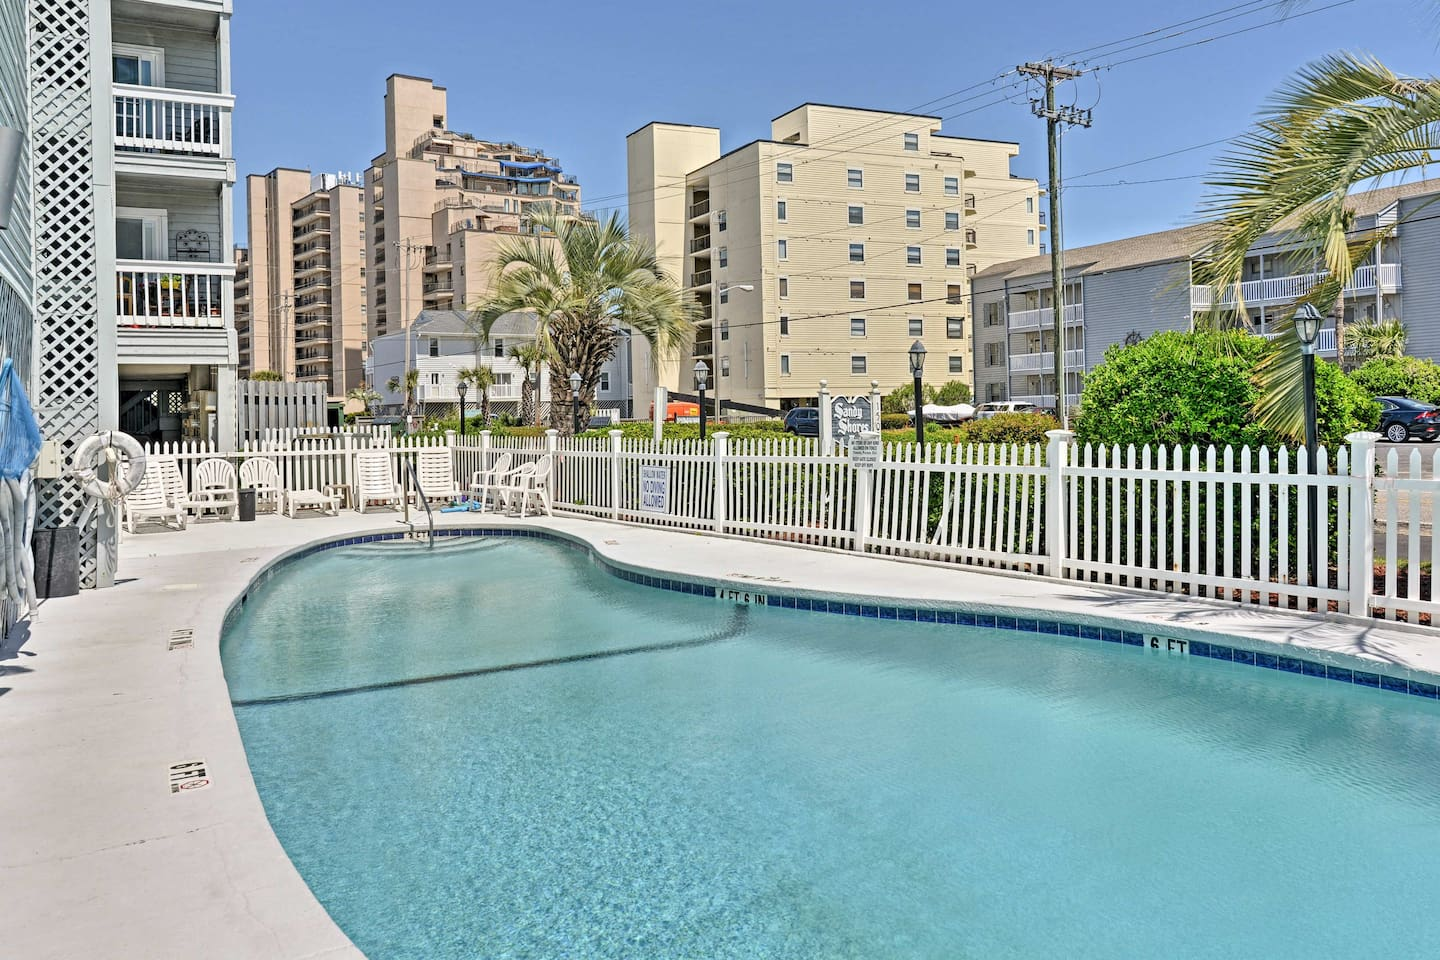 Your dream getaway begins at this vacation rental condo in Murrells Inlet!